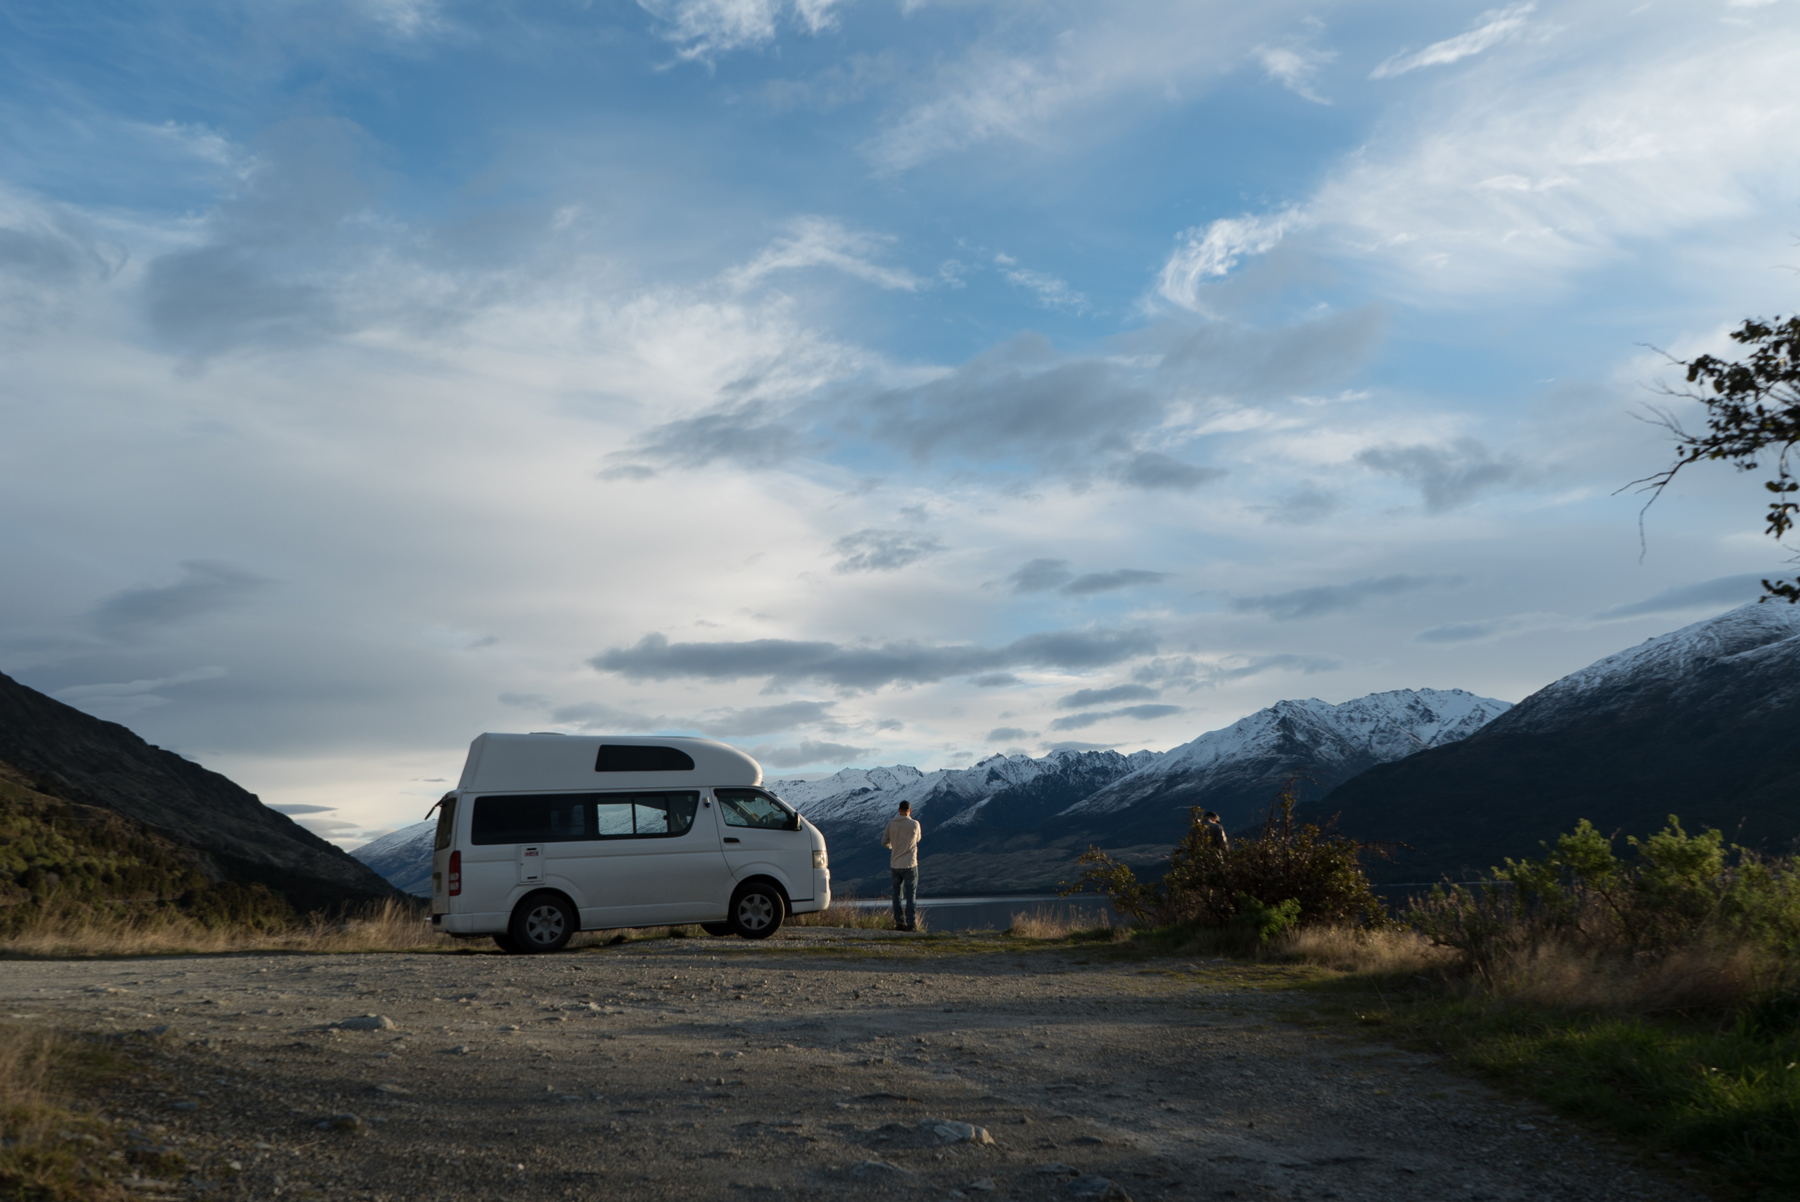 A single campervan parked in the middle of an open gravel area with mountains in the distance